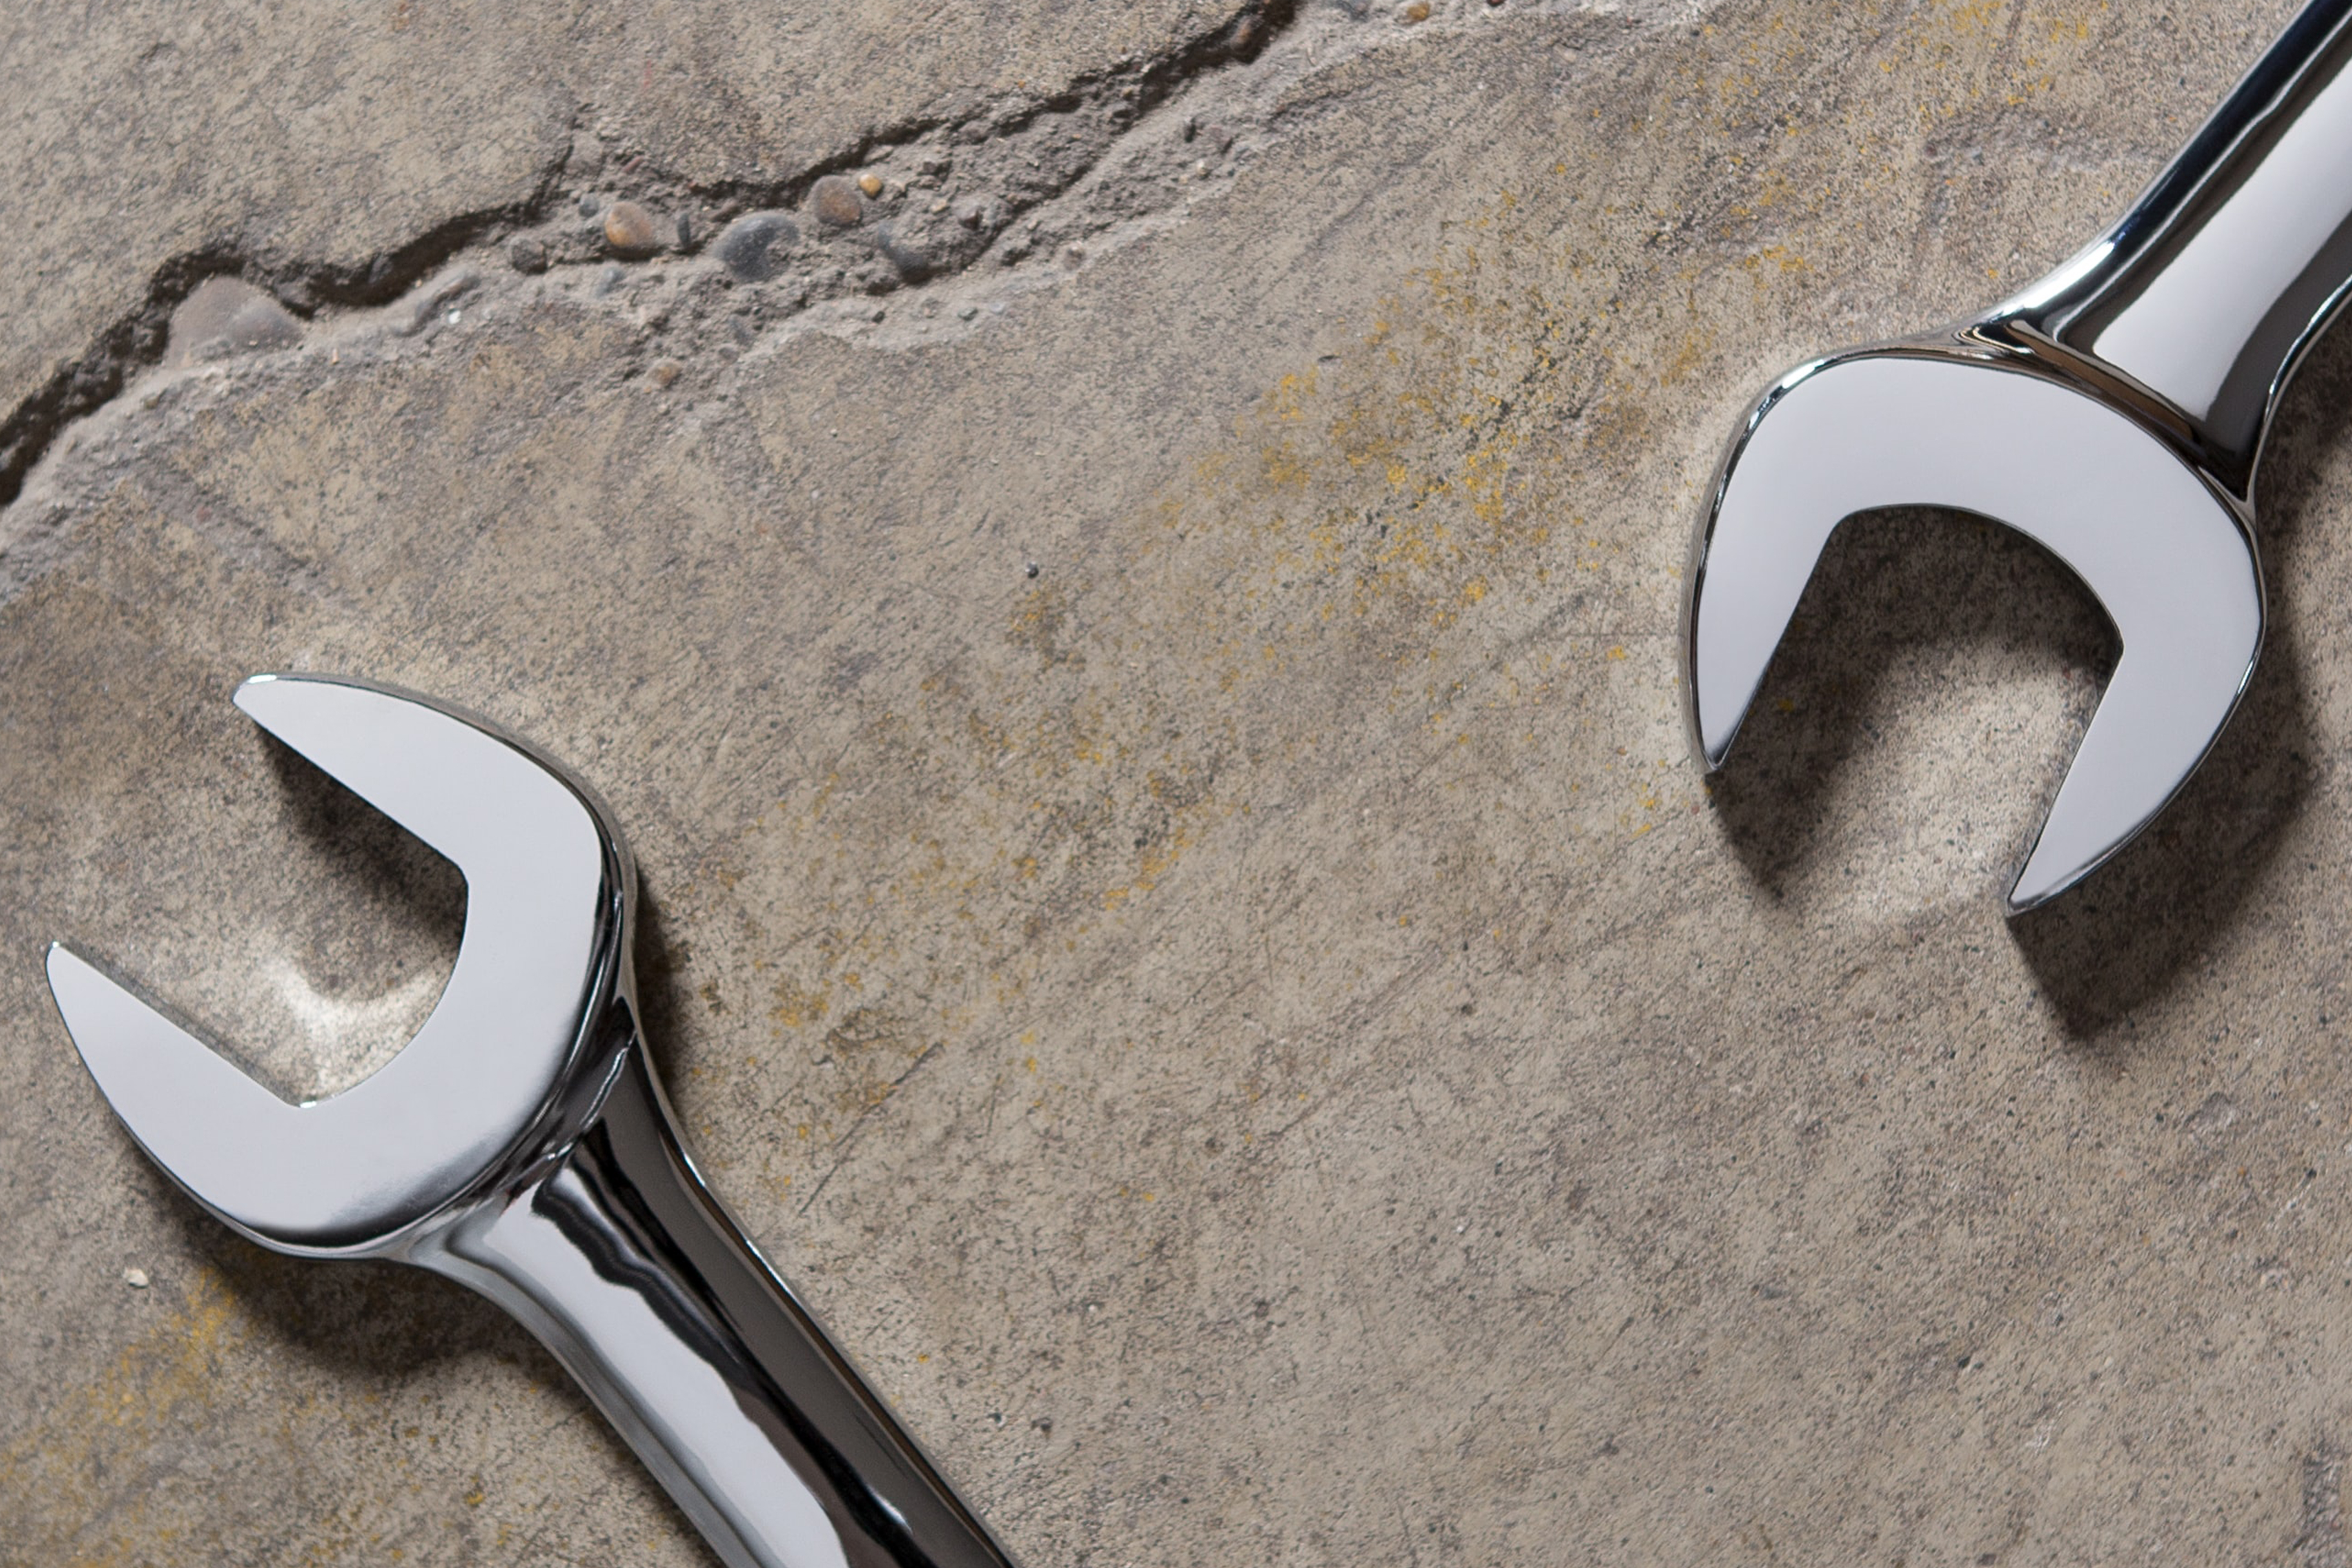 Wrenches on concrete for home care and repair